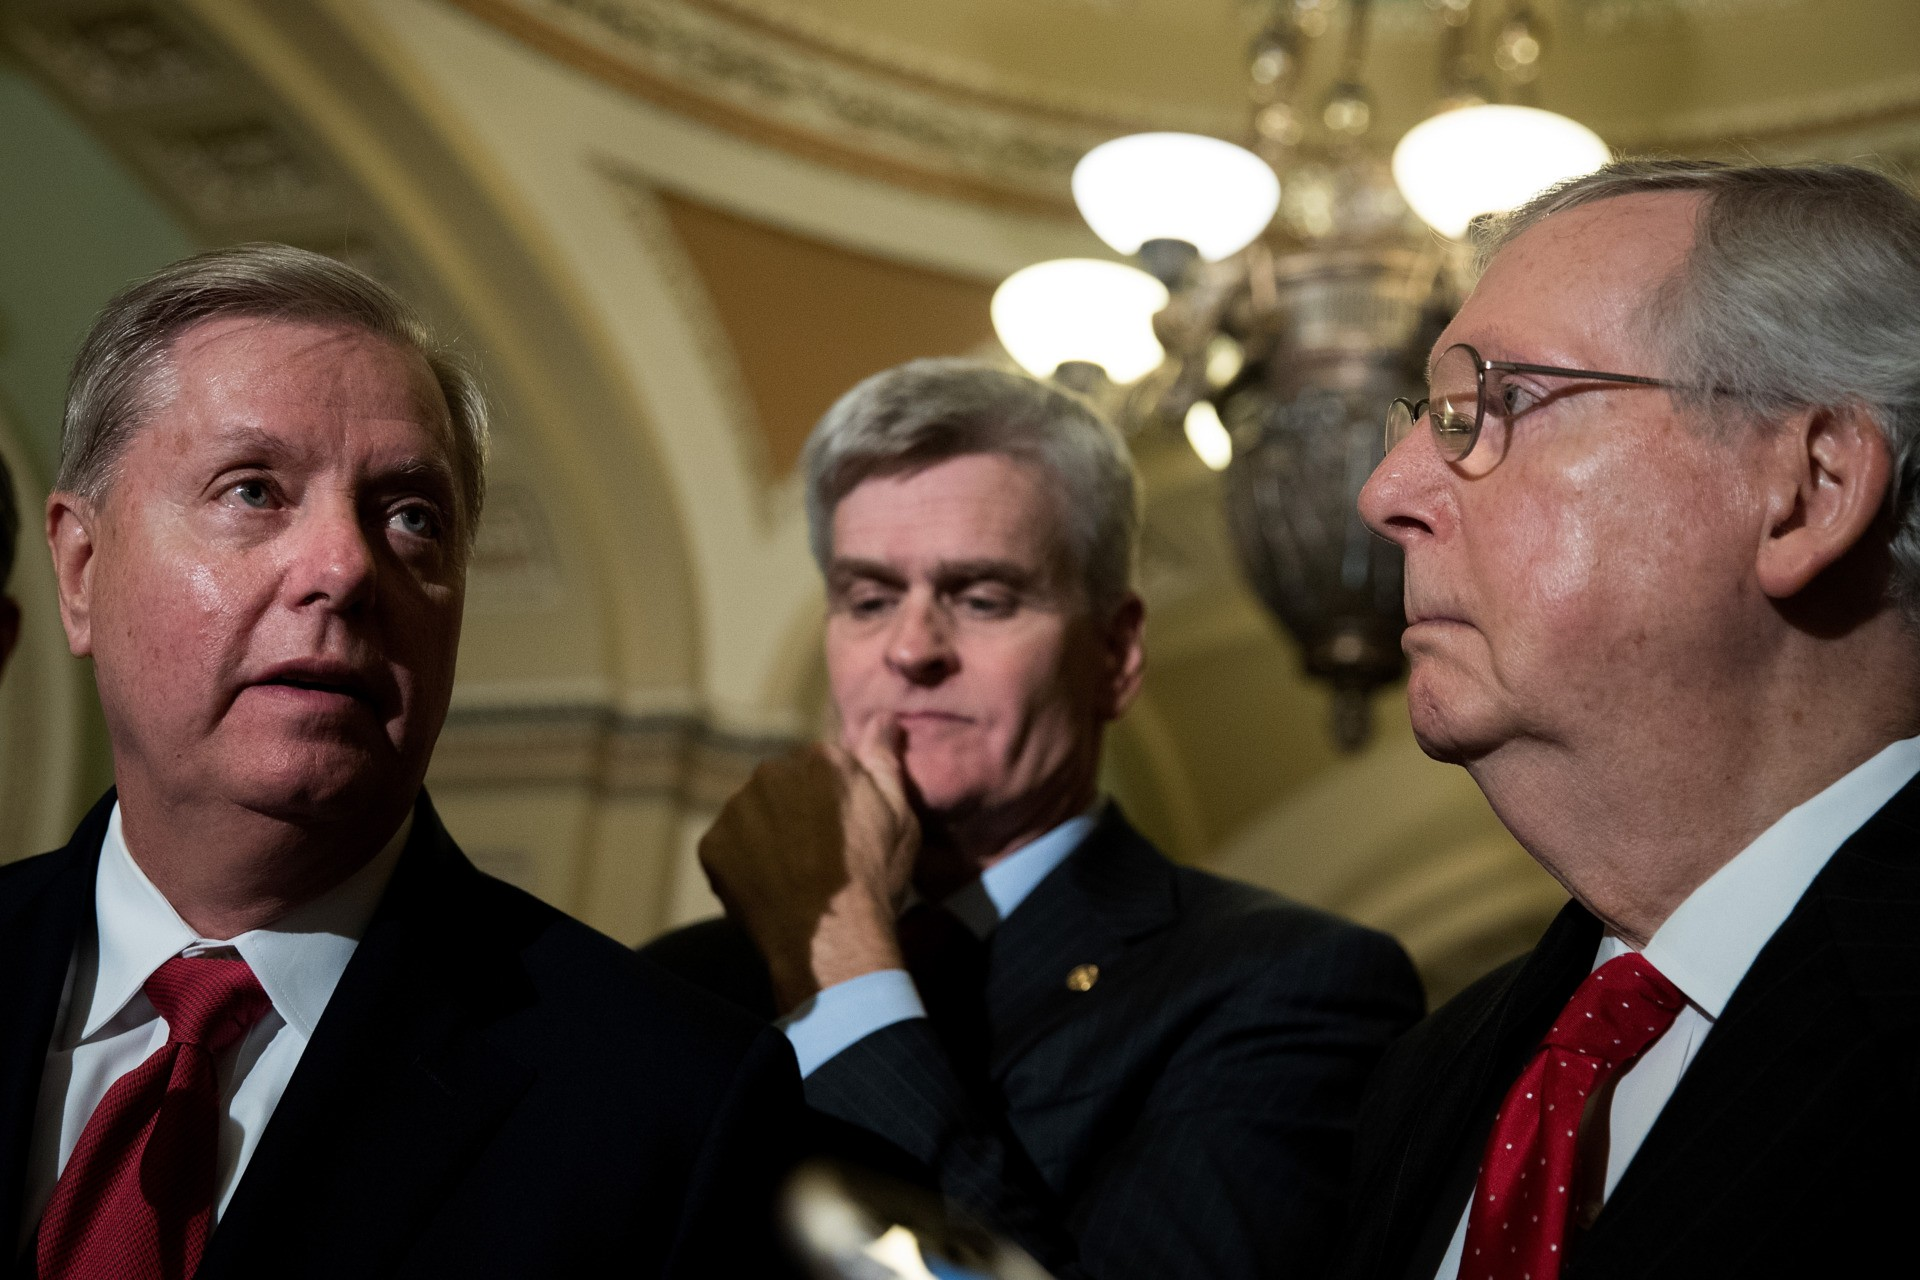 WASHINGTON, DC - SEPTEMBER 26: (L to R) Lindsey Graham (R-SC), Bill Cassidy (R-LA) and Majority Leader Mitch McConnell (R-KY) take questions from reporters during a news conference following their weekly policy luncheon, September 26, 2017 in Washington, DC. Leader McConnell announced they will not vote on the Graham-Cassidy health care bill, the GOP